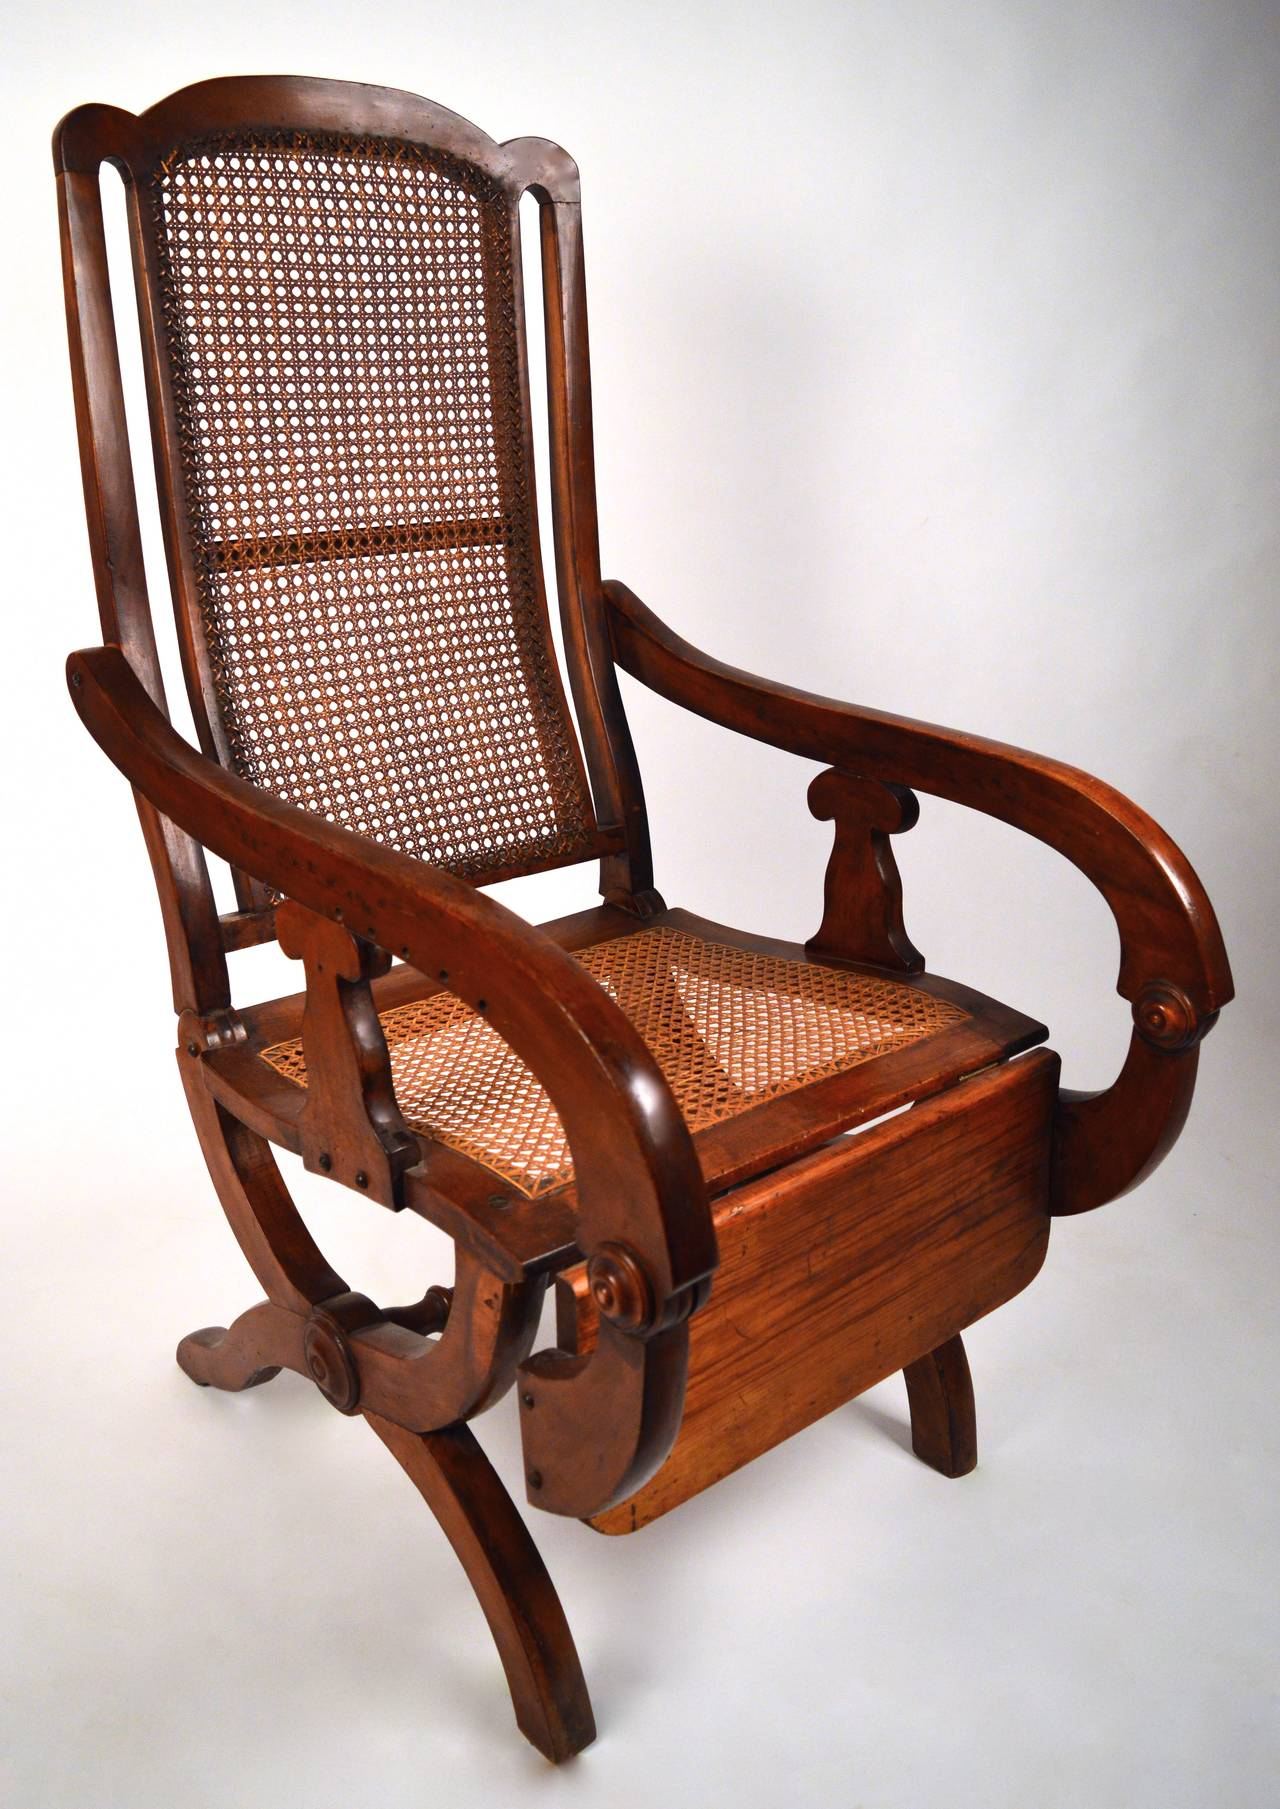 Colonial Chair 19th Century British Colonial Reclining Chair For Sale At